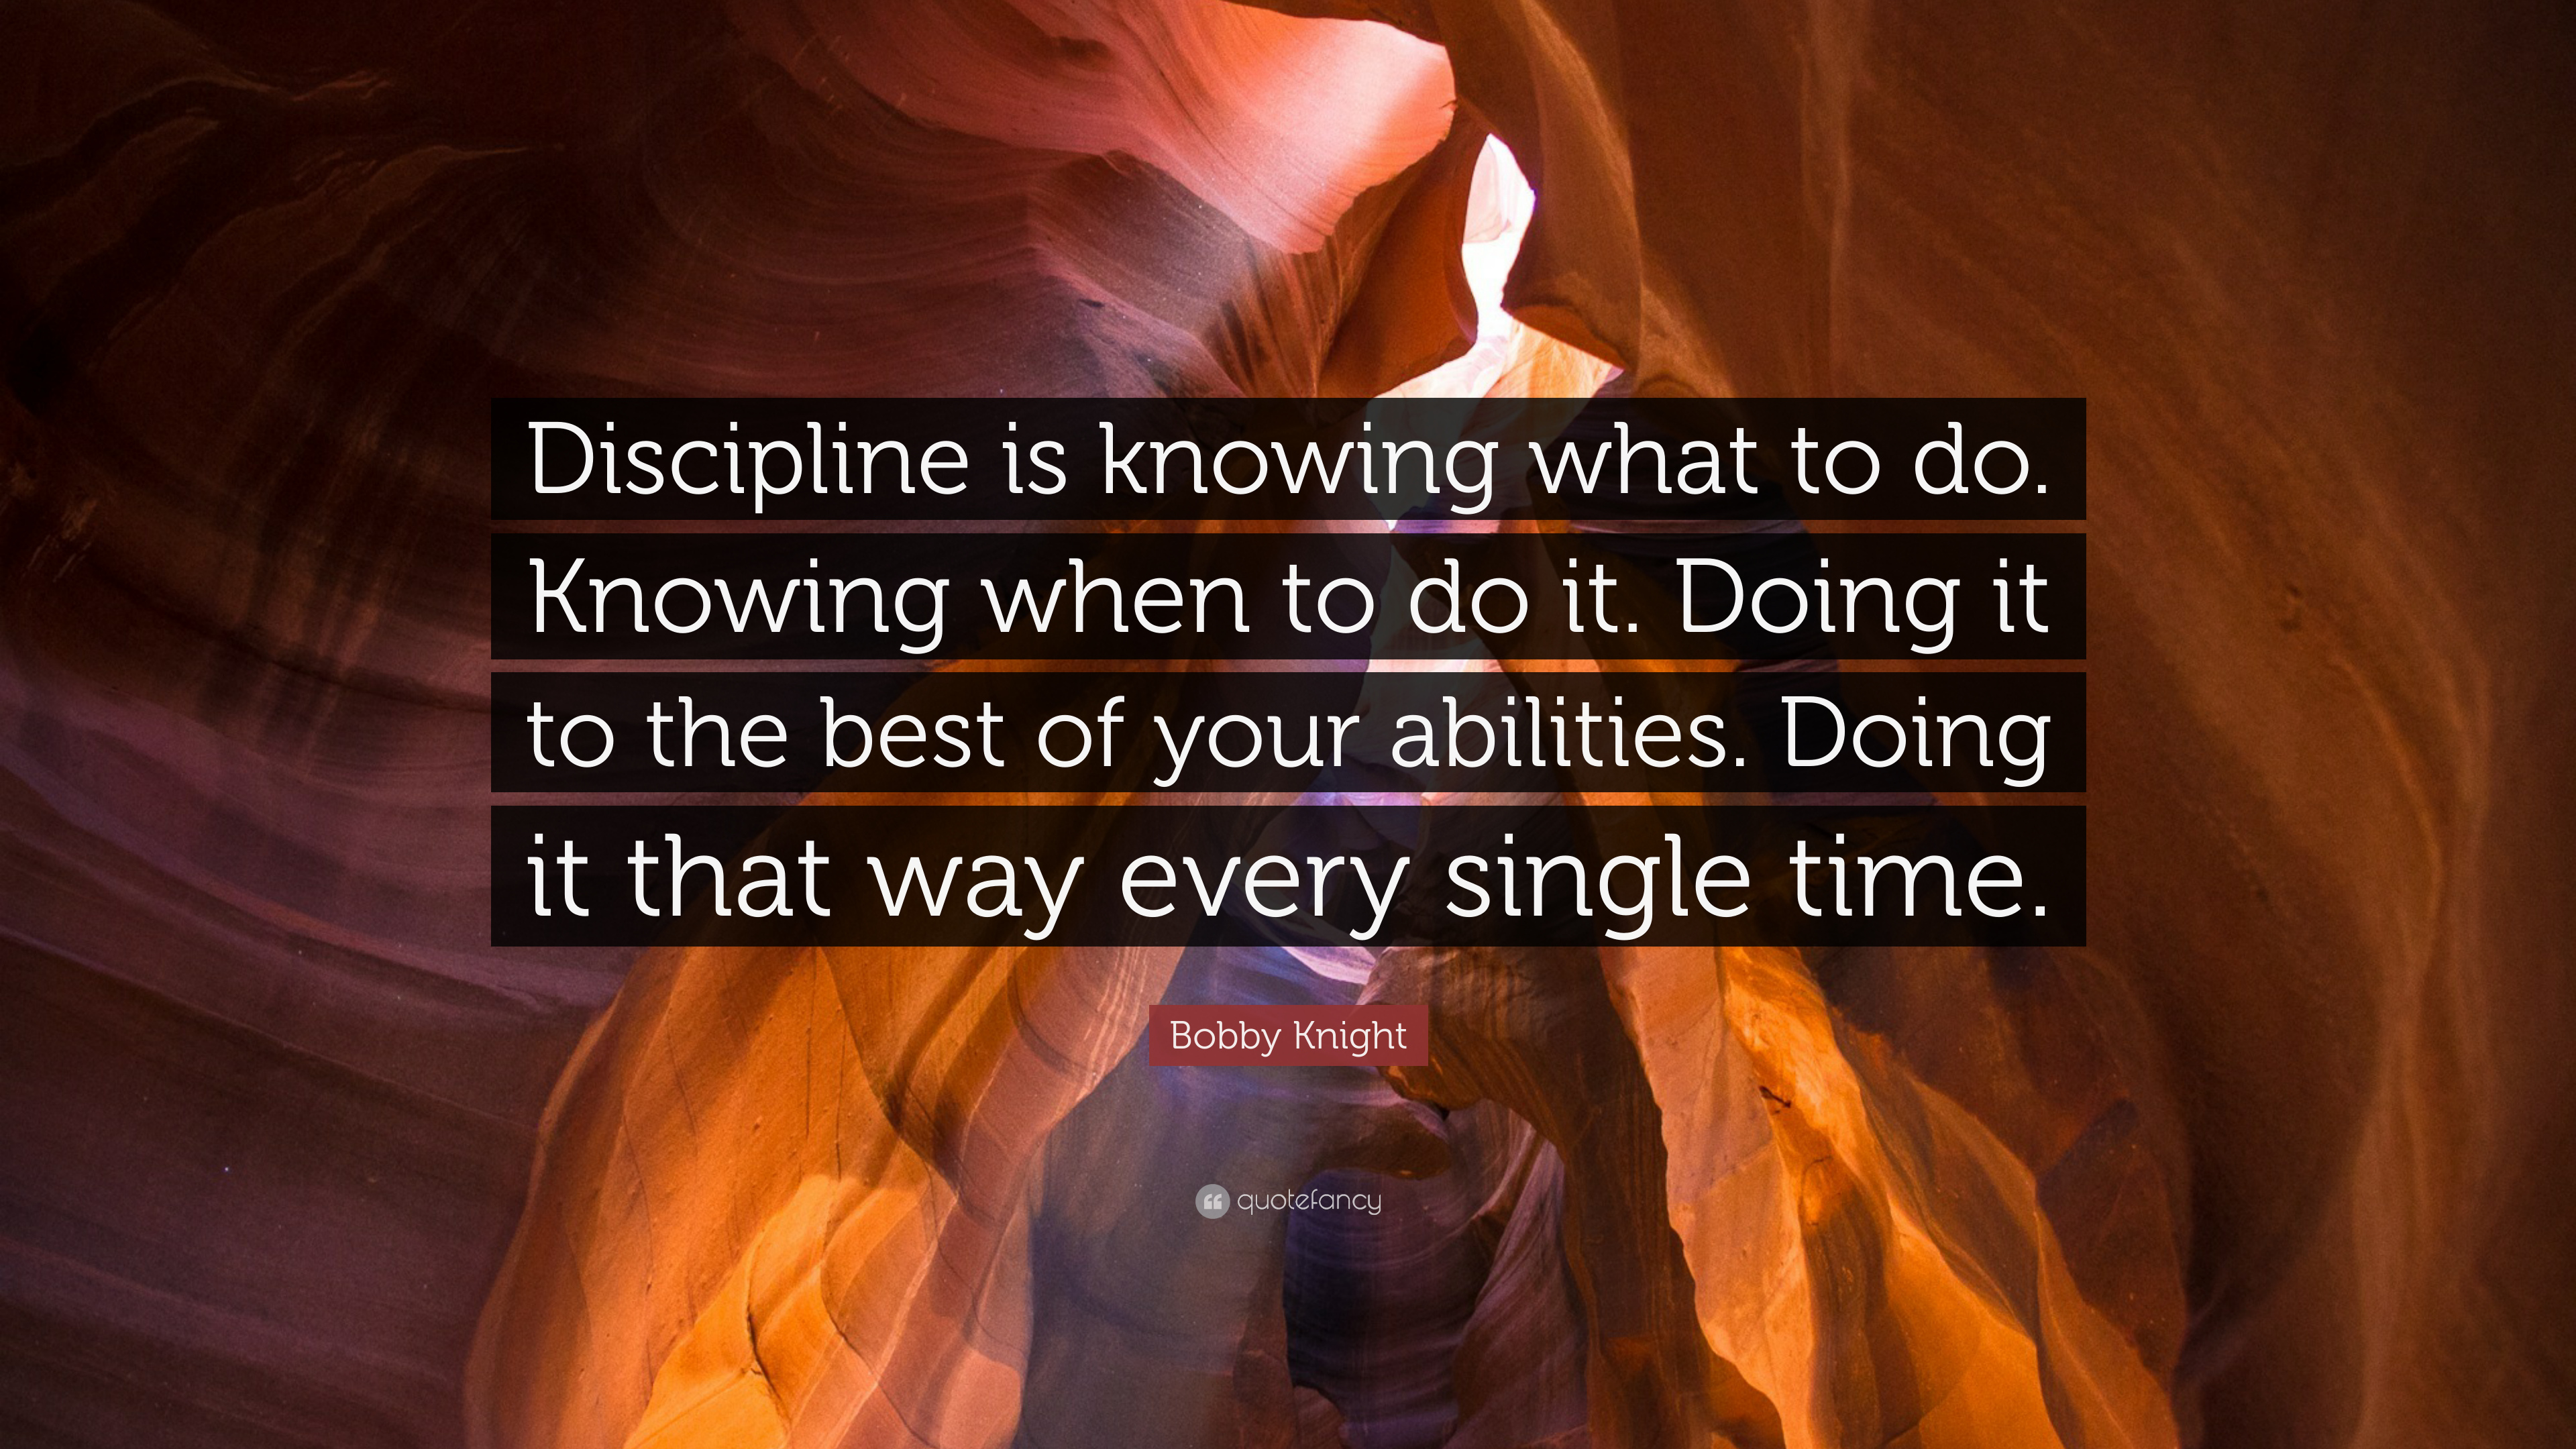 Bobby Knight Quote Discipline Is Knowing What To Do Knowing When